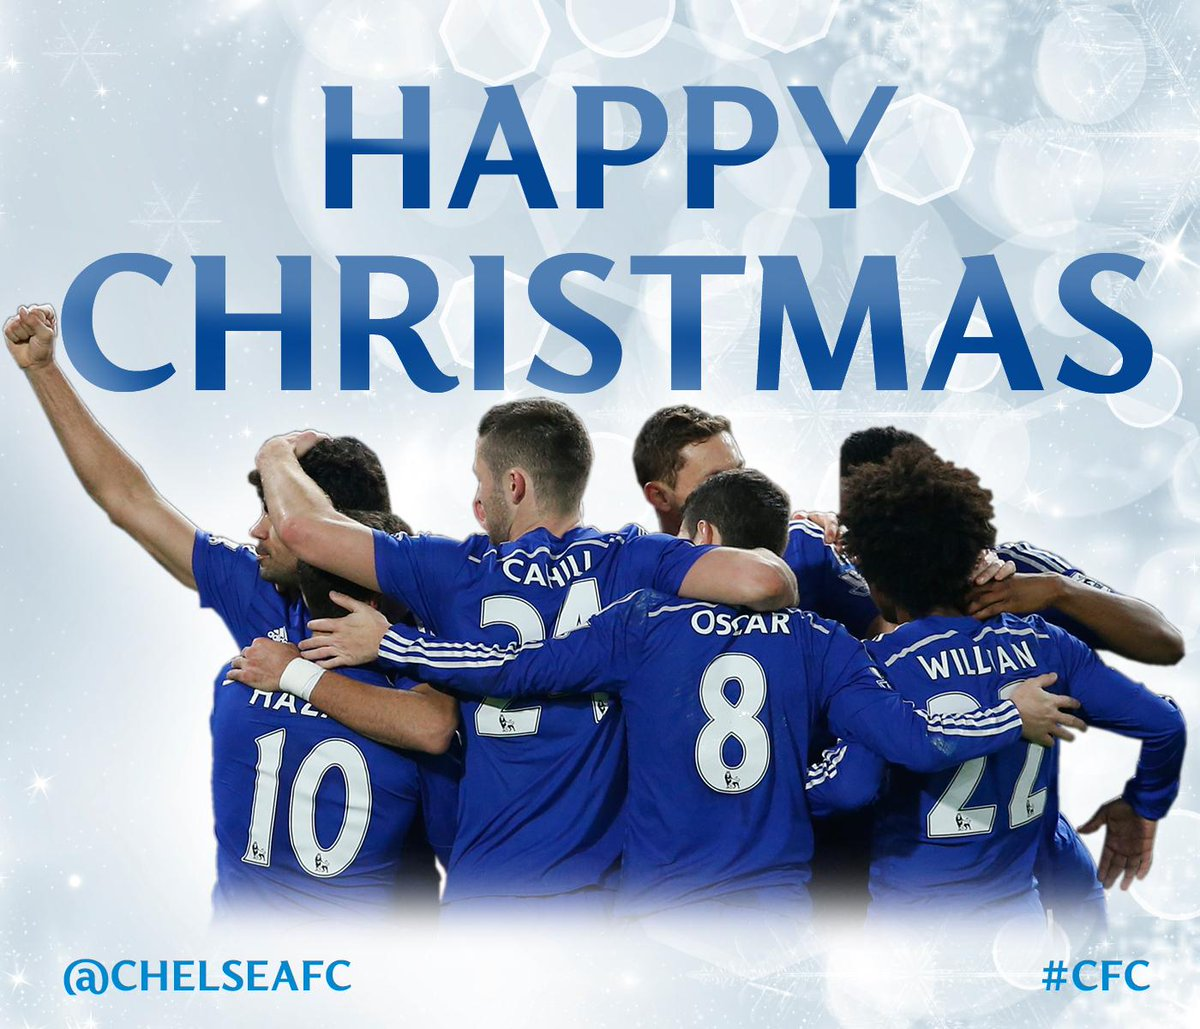 Chelsea Fc On Twitter Happy Christmas From All At Chelsea Football Club Cfc Http T Co Oouft2cshc